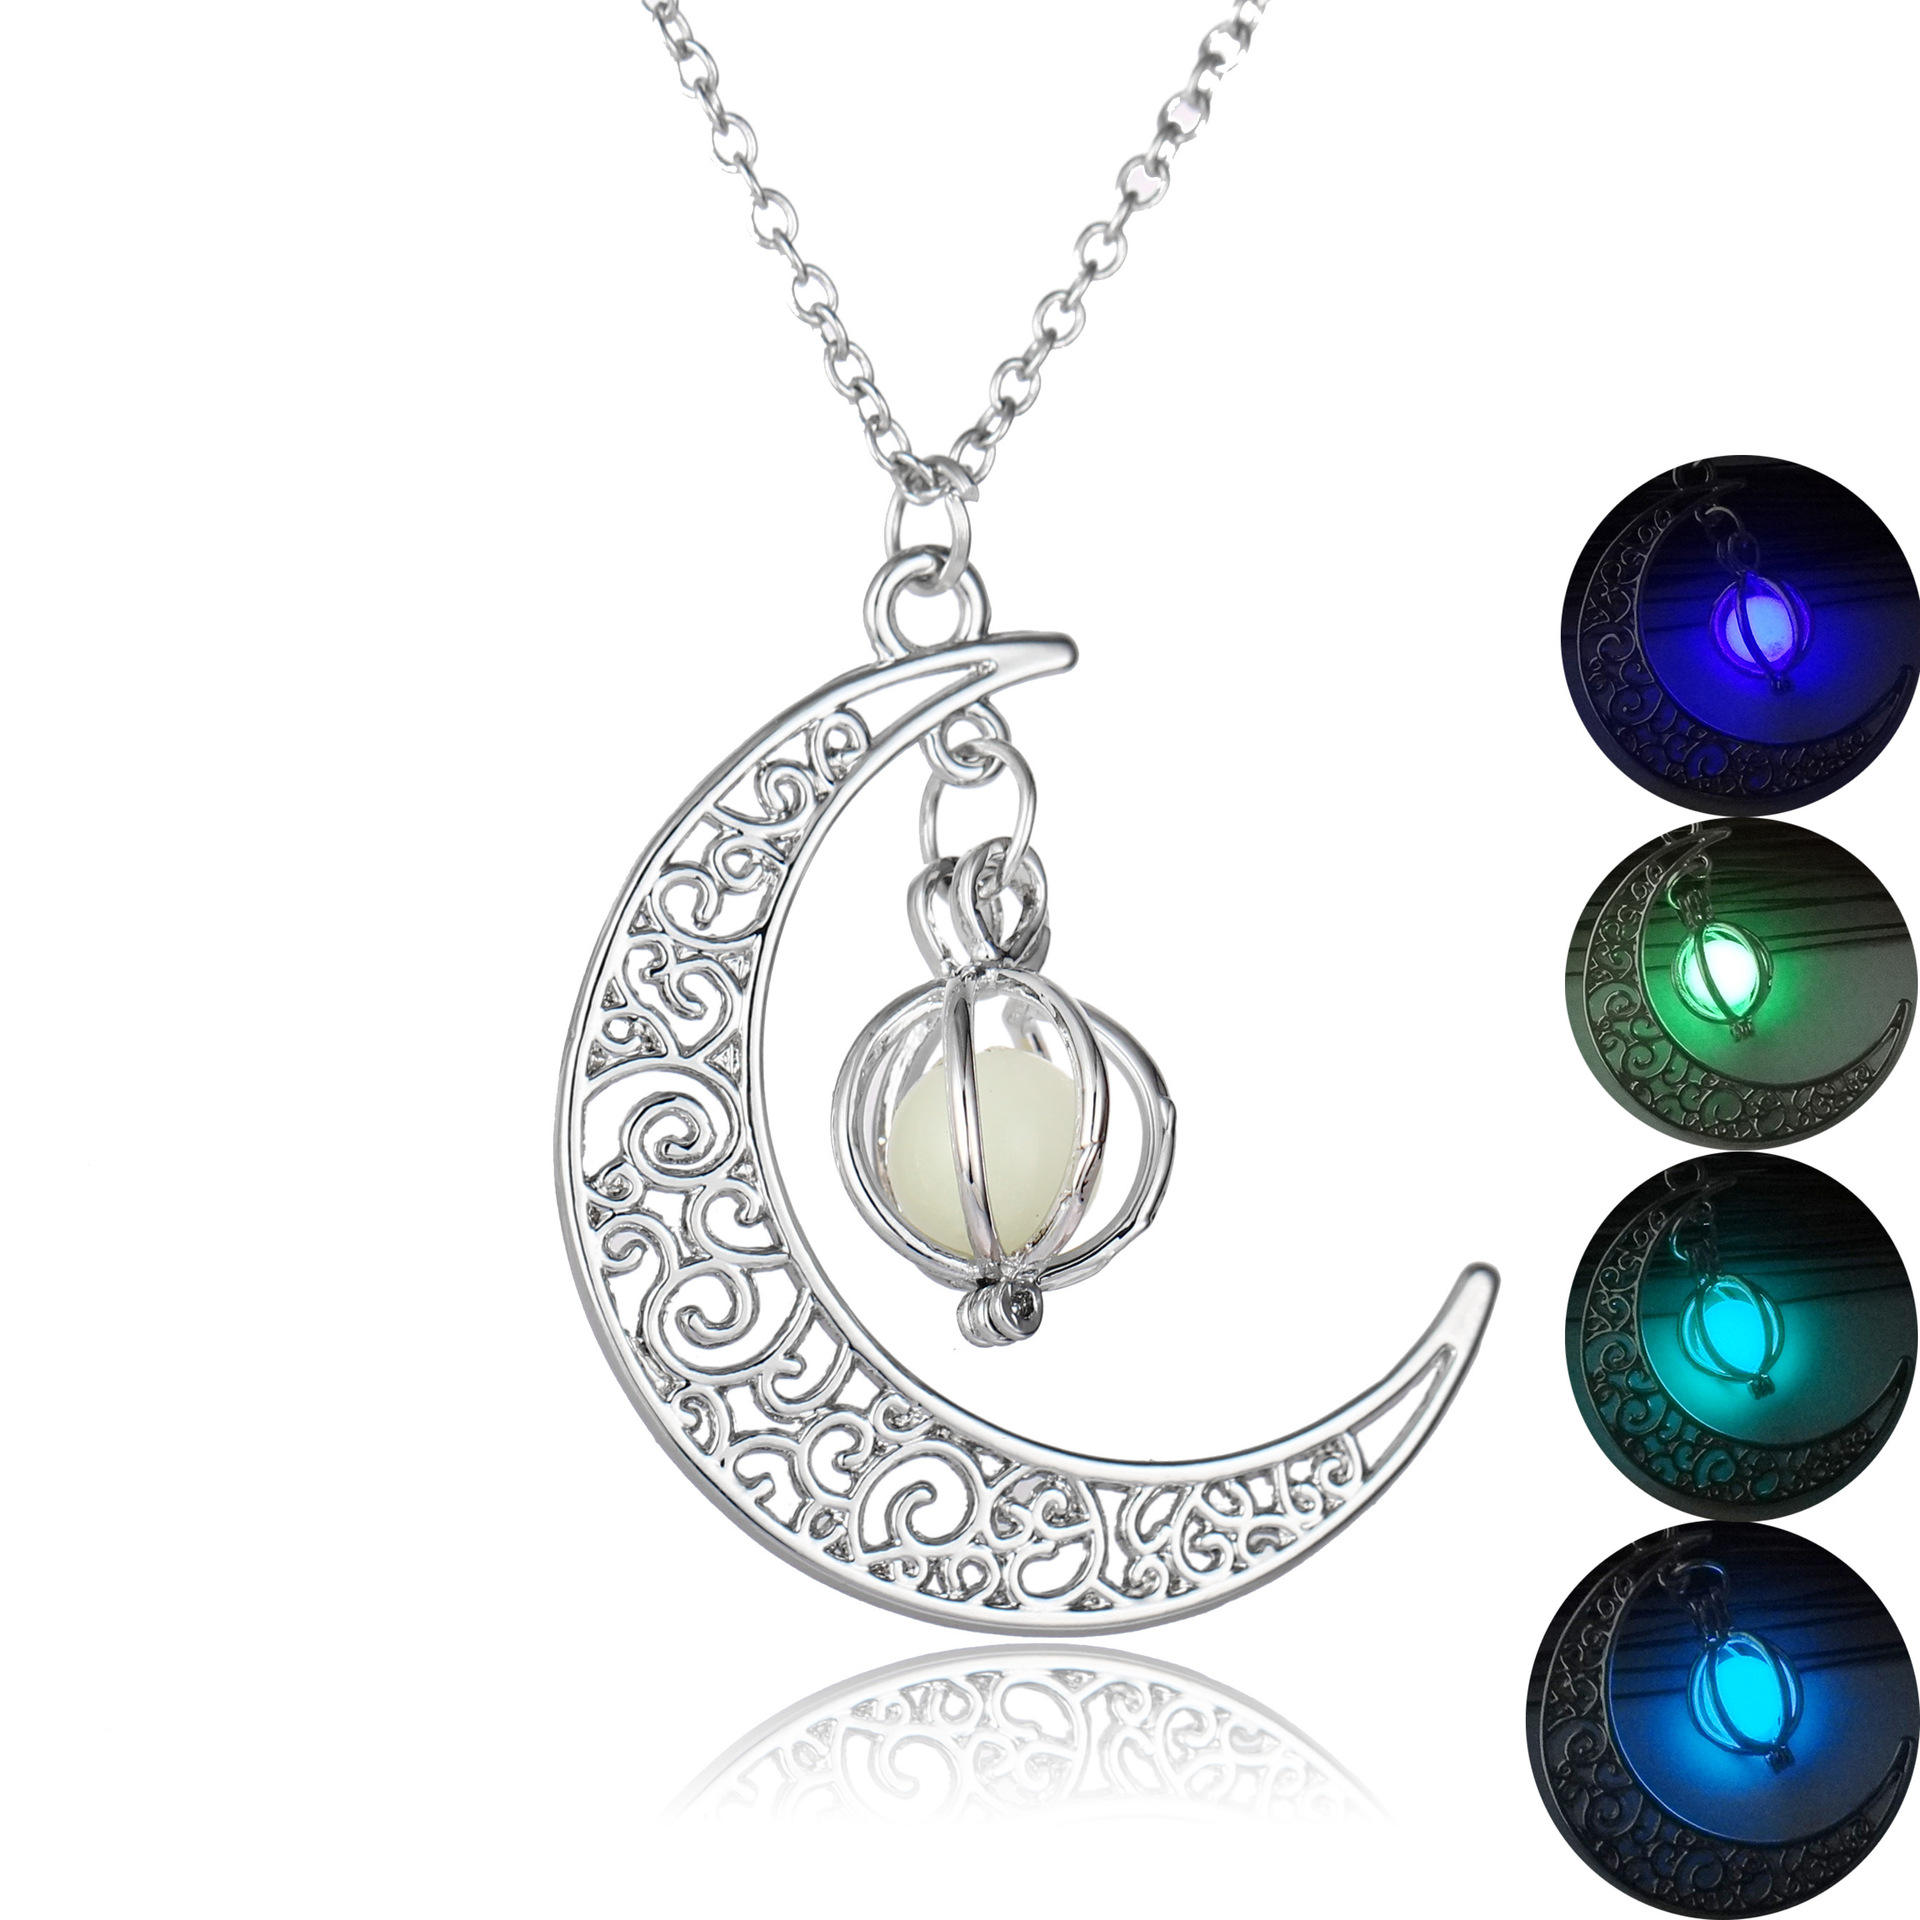 Creative Glowing Moon Pumpkin Pendant Luminous Glow in the Dark Light Necklace as Christmas Halloween Gifts